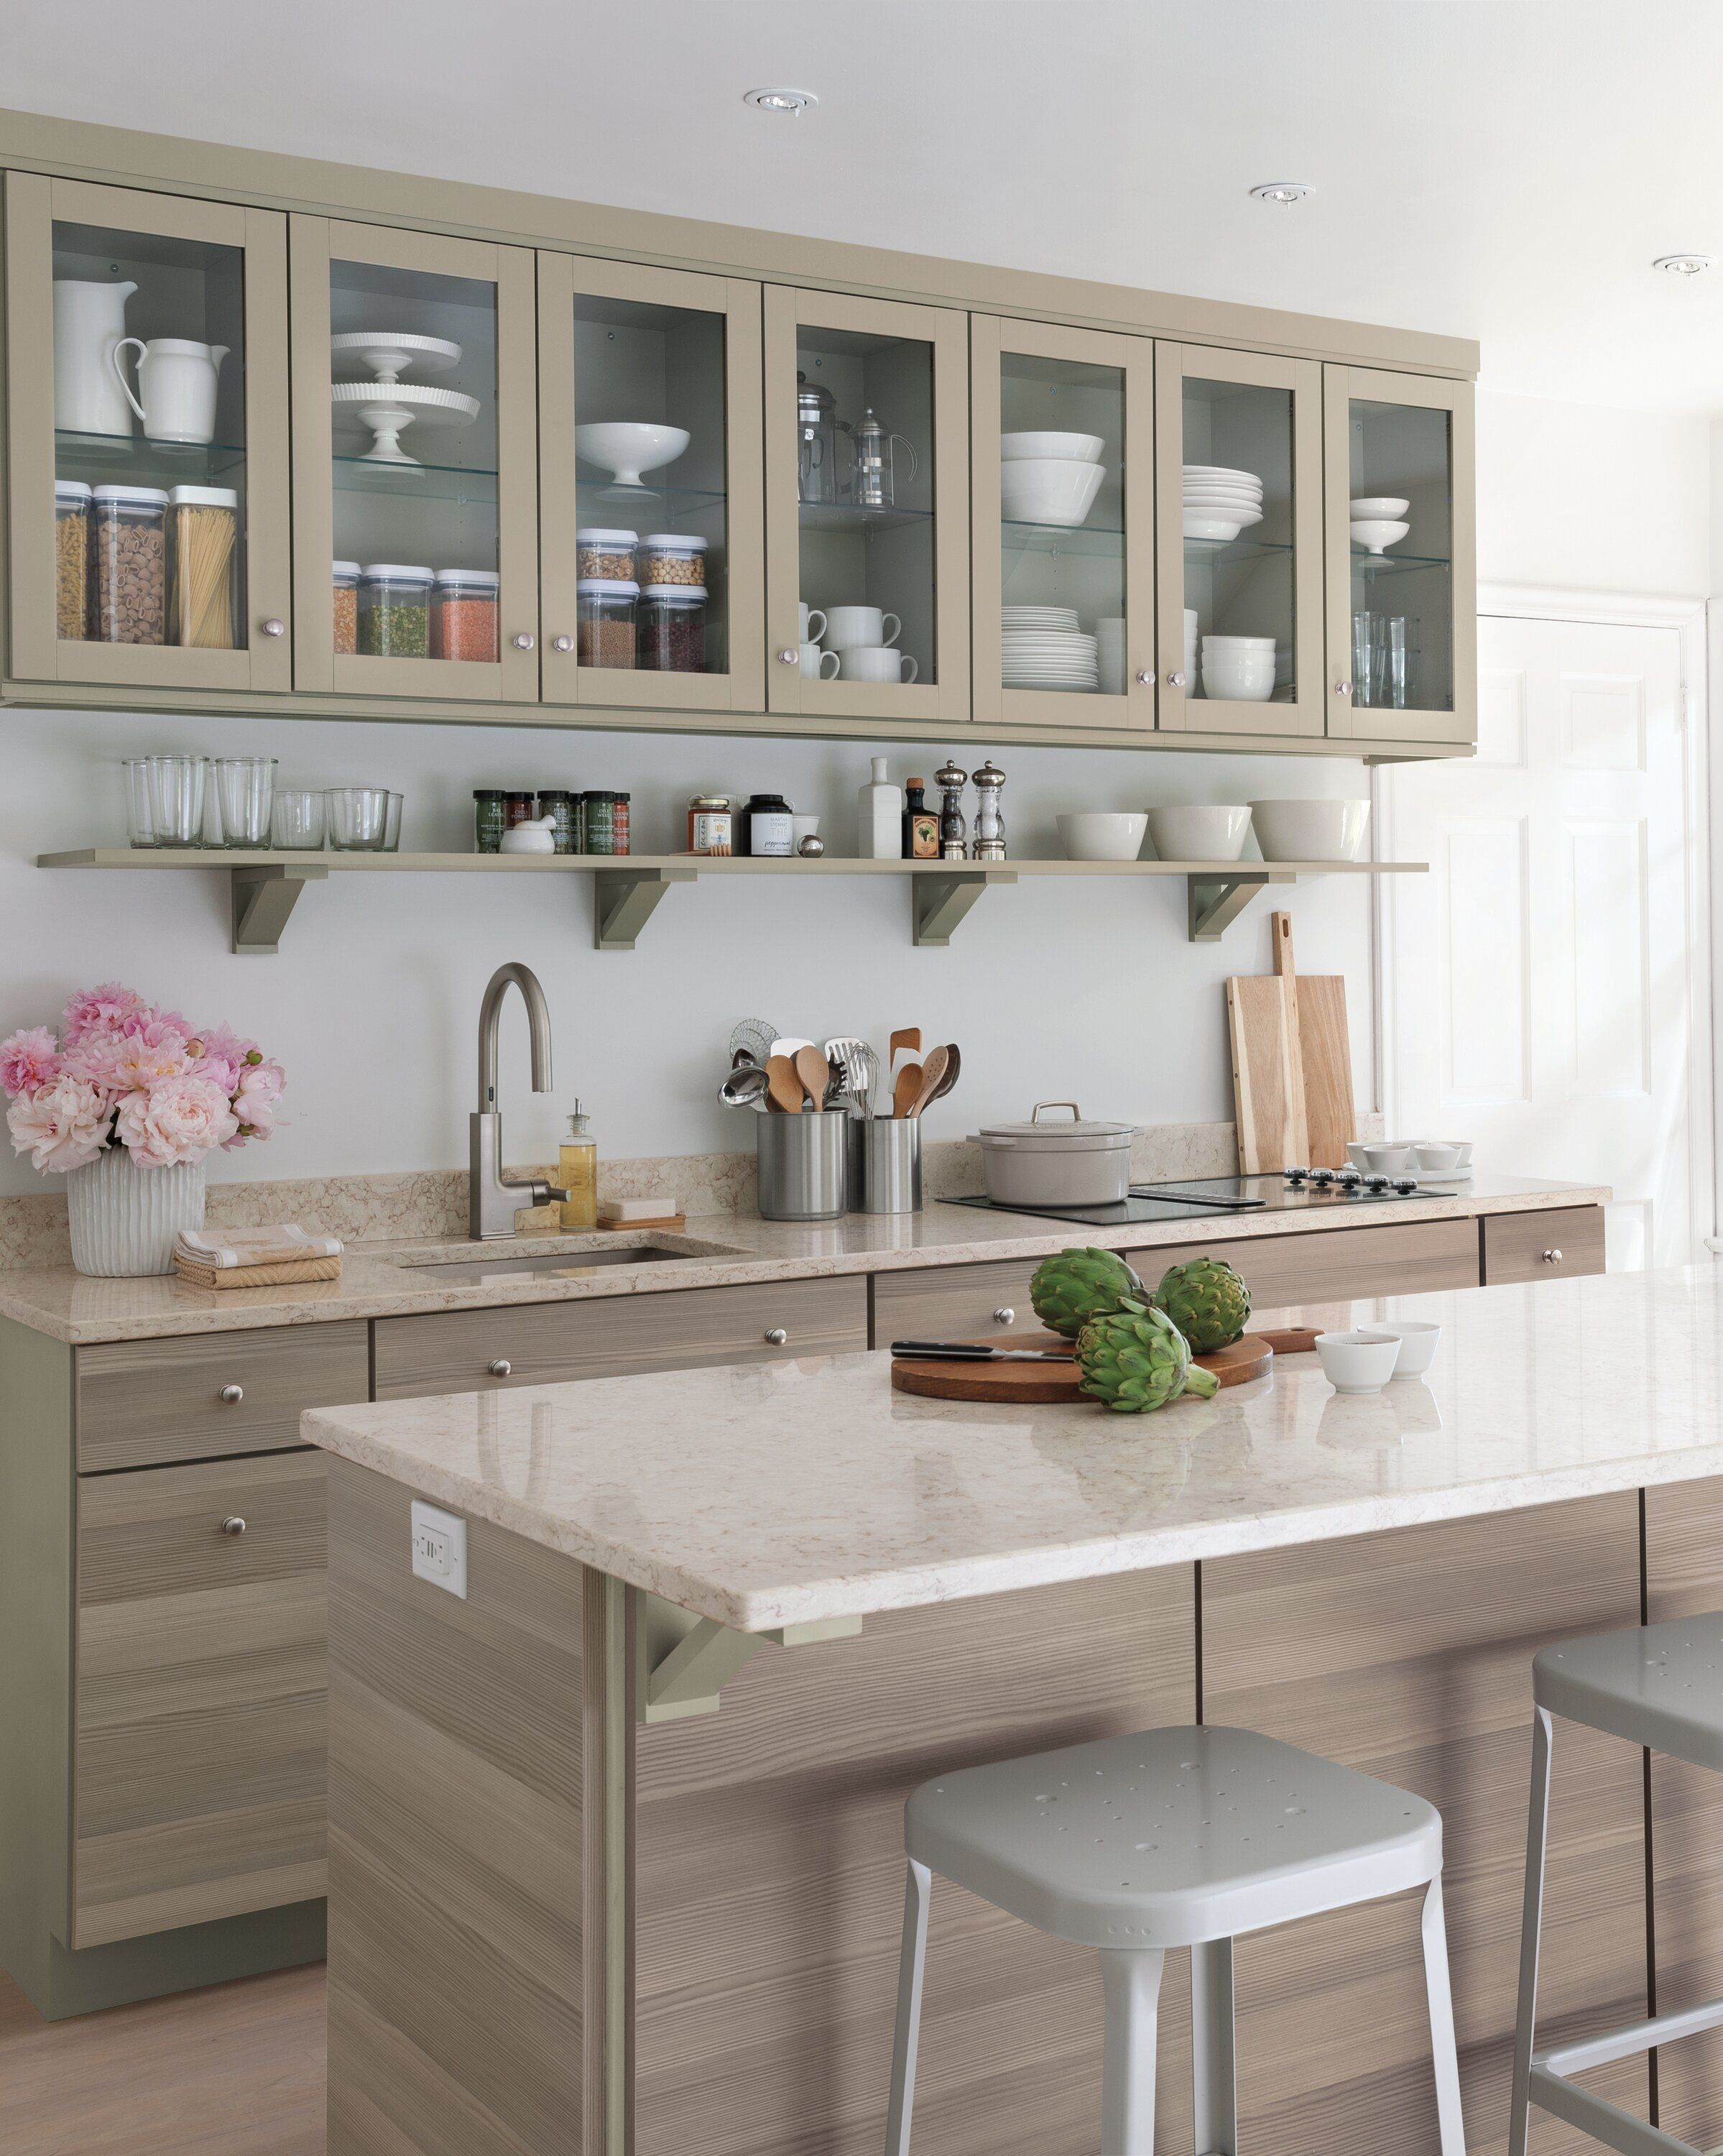 Before And After Martha S Amazing Maple Avenue Kitchen Makeover In 2020 Condo Kitchen Remodel Kitchen Remodel Martha Stewart Living Kitchen